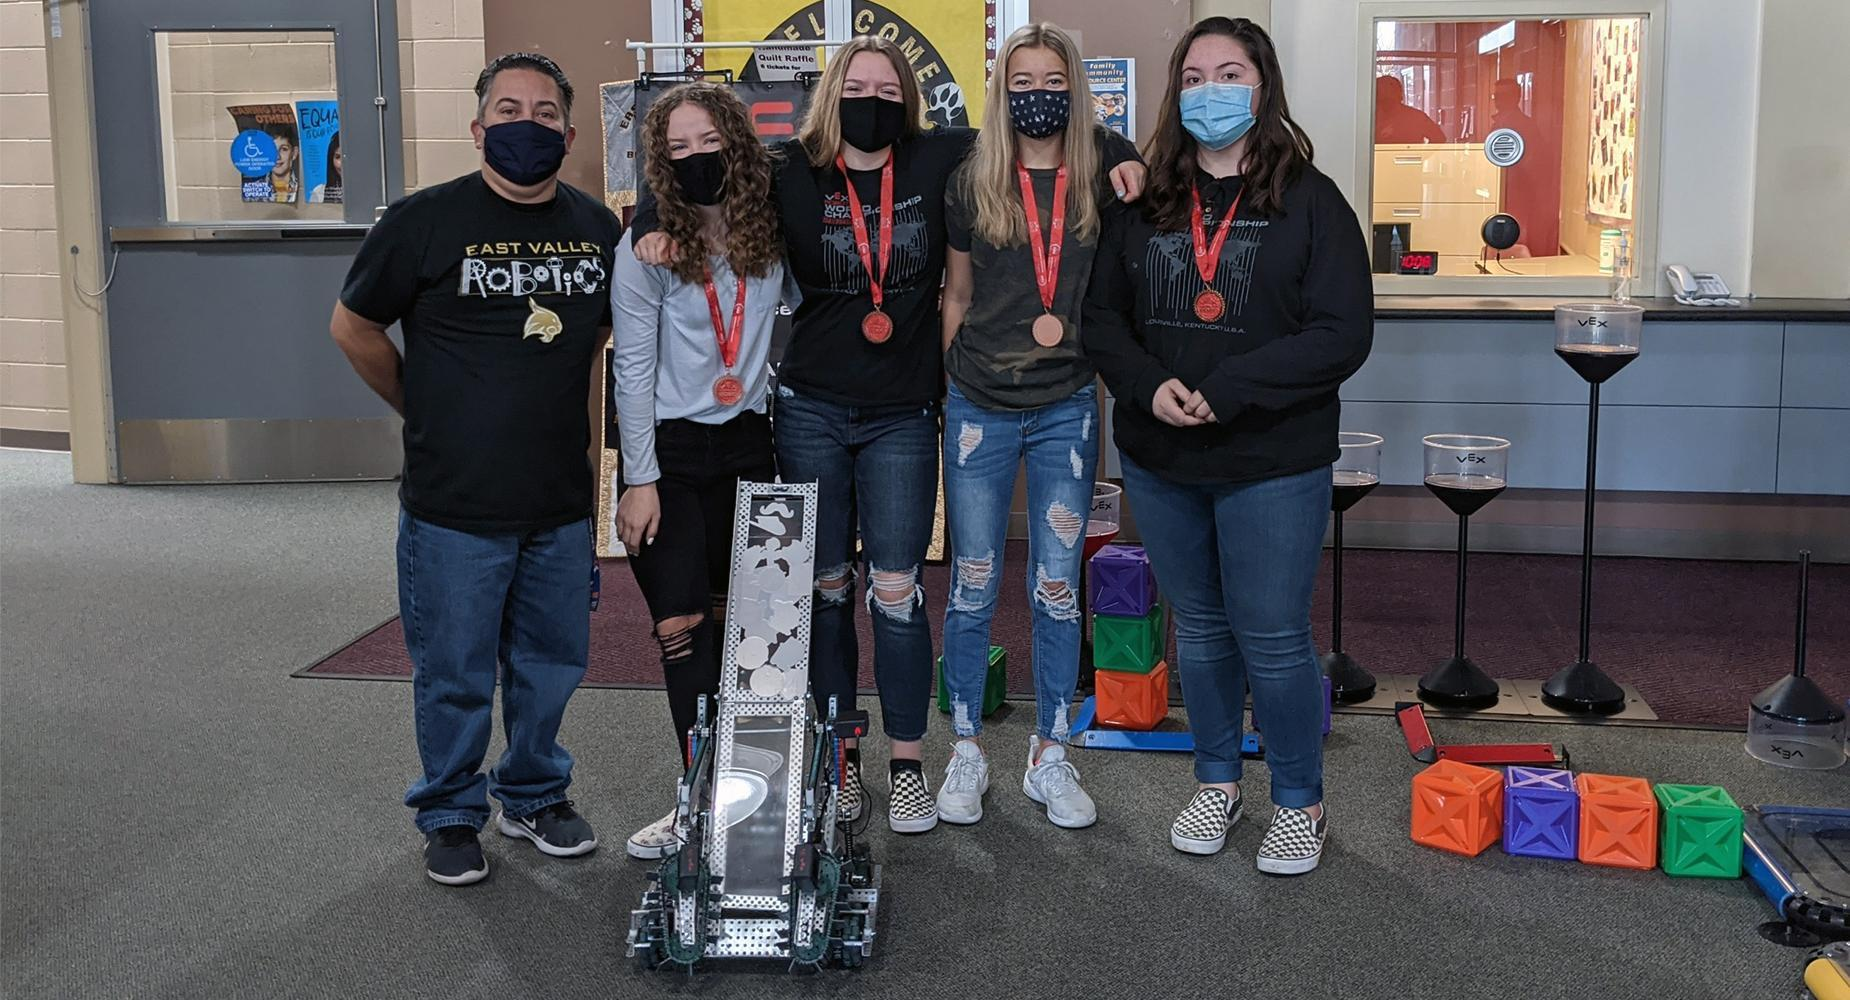 East Valley Robotics Advisor Jesus Gomez poses with Ashley Wyne, Aryn Okelberry, Bailey St. Peter, Aleiah Downing, and their winning robot.